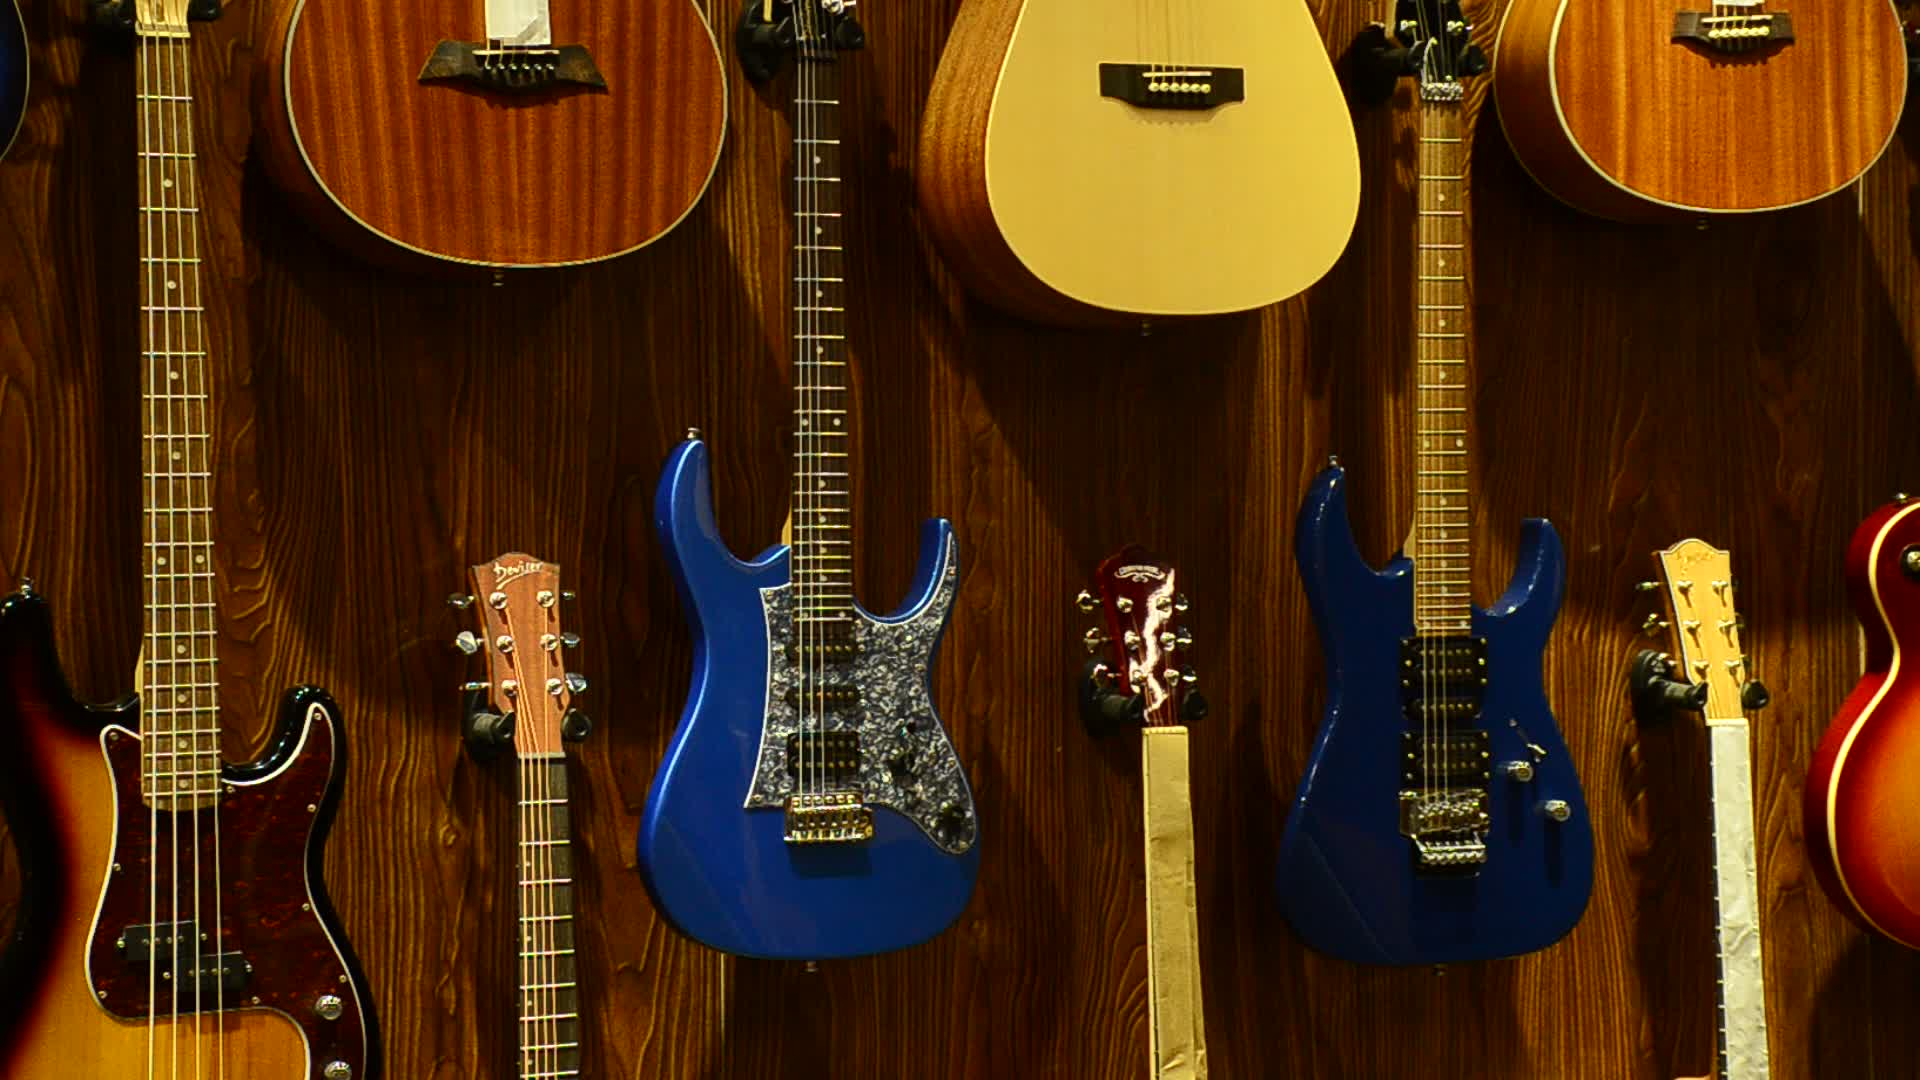 factory cheap double wave electric guitar custom guitarra electrica buy guitar custom guitarra. Black Bedroom Furniture Sets. Home Design Ideas